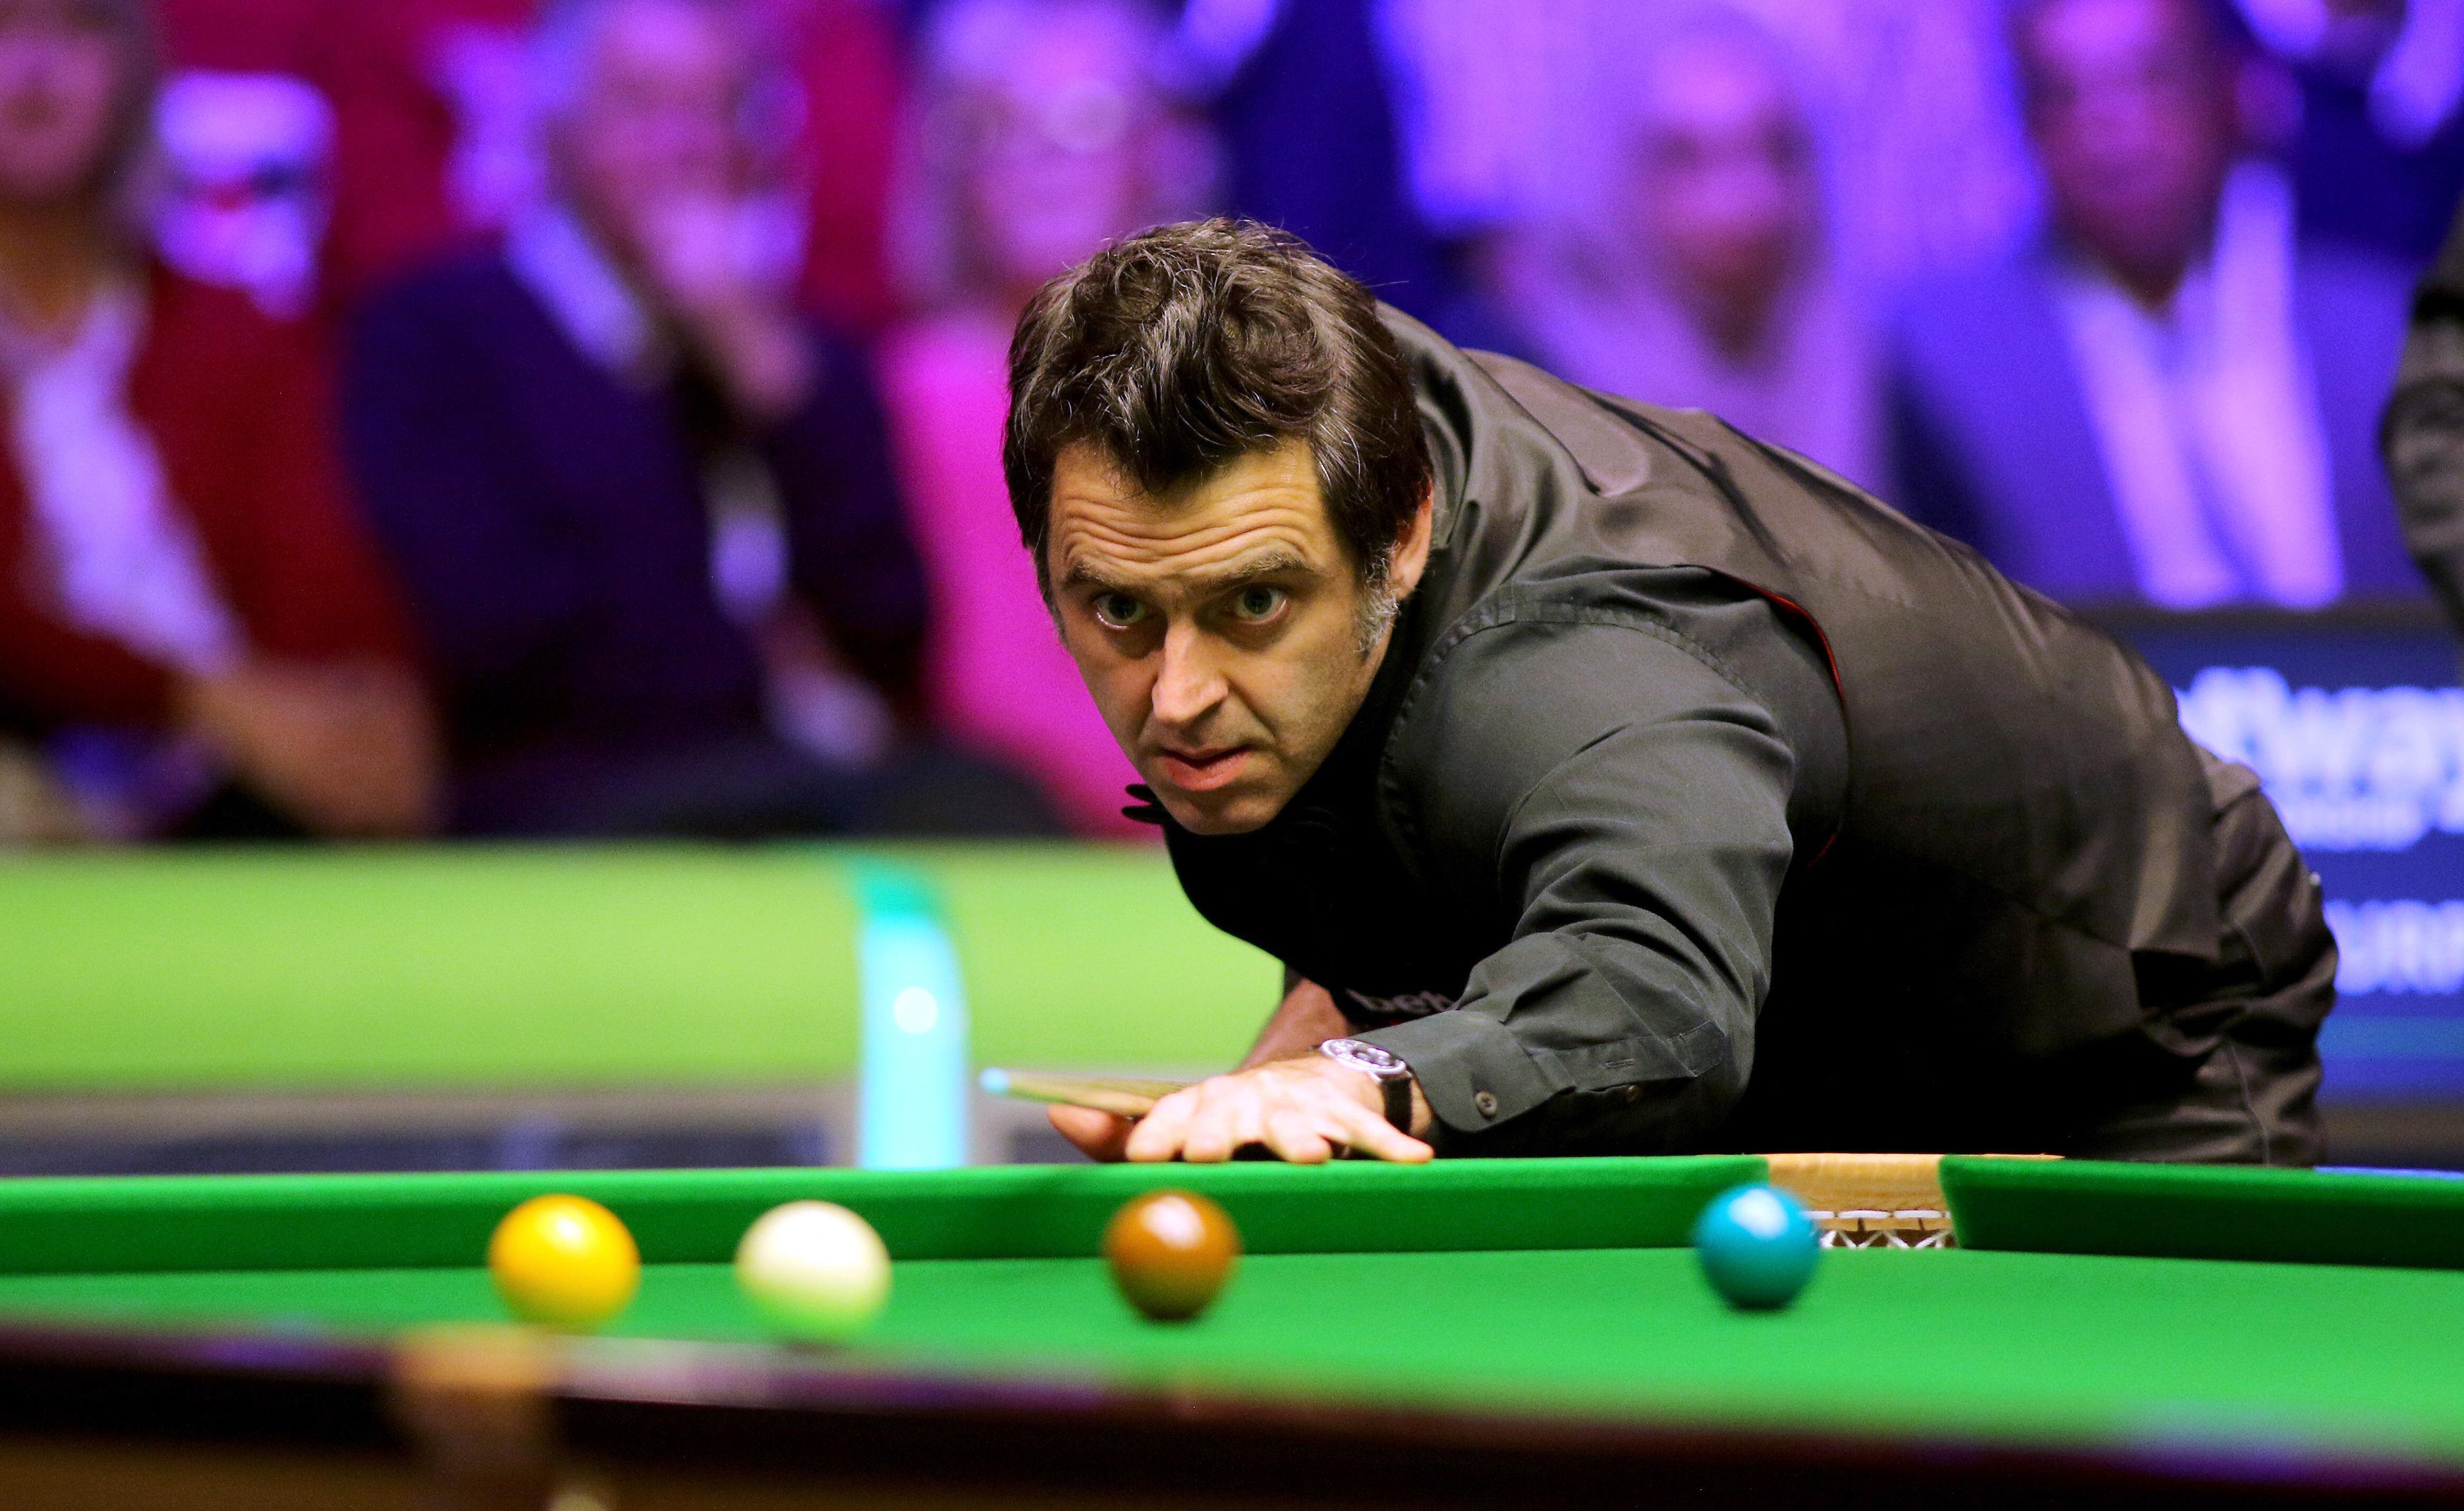 Ronnie O'Sullivan has been snooker's outspoken star for years